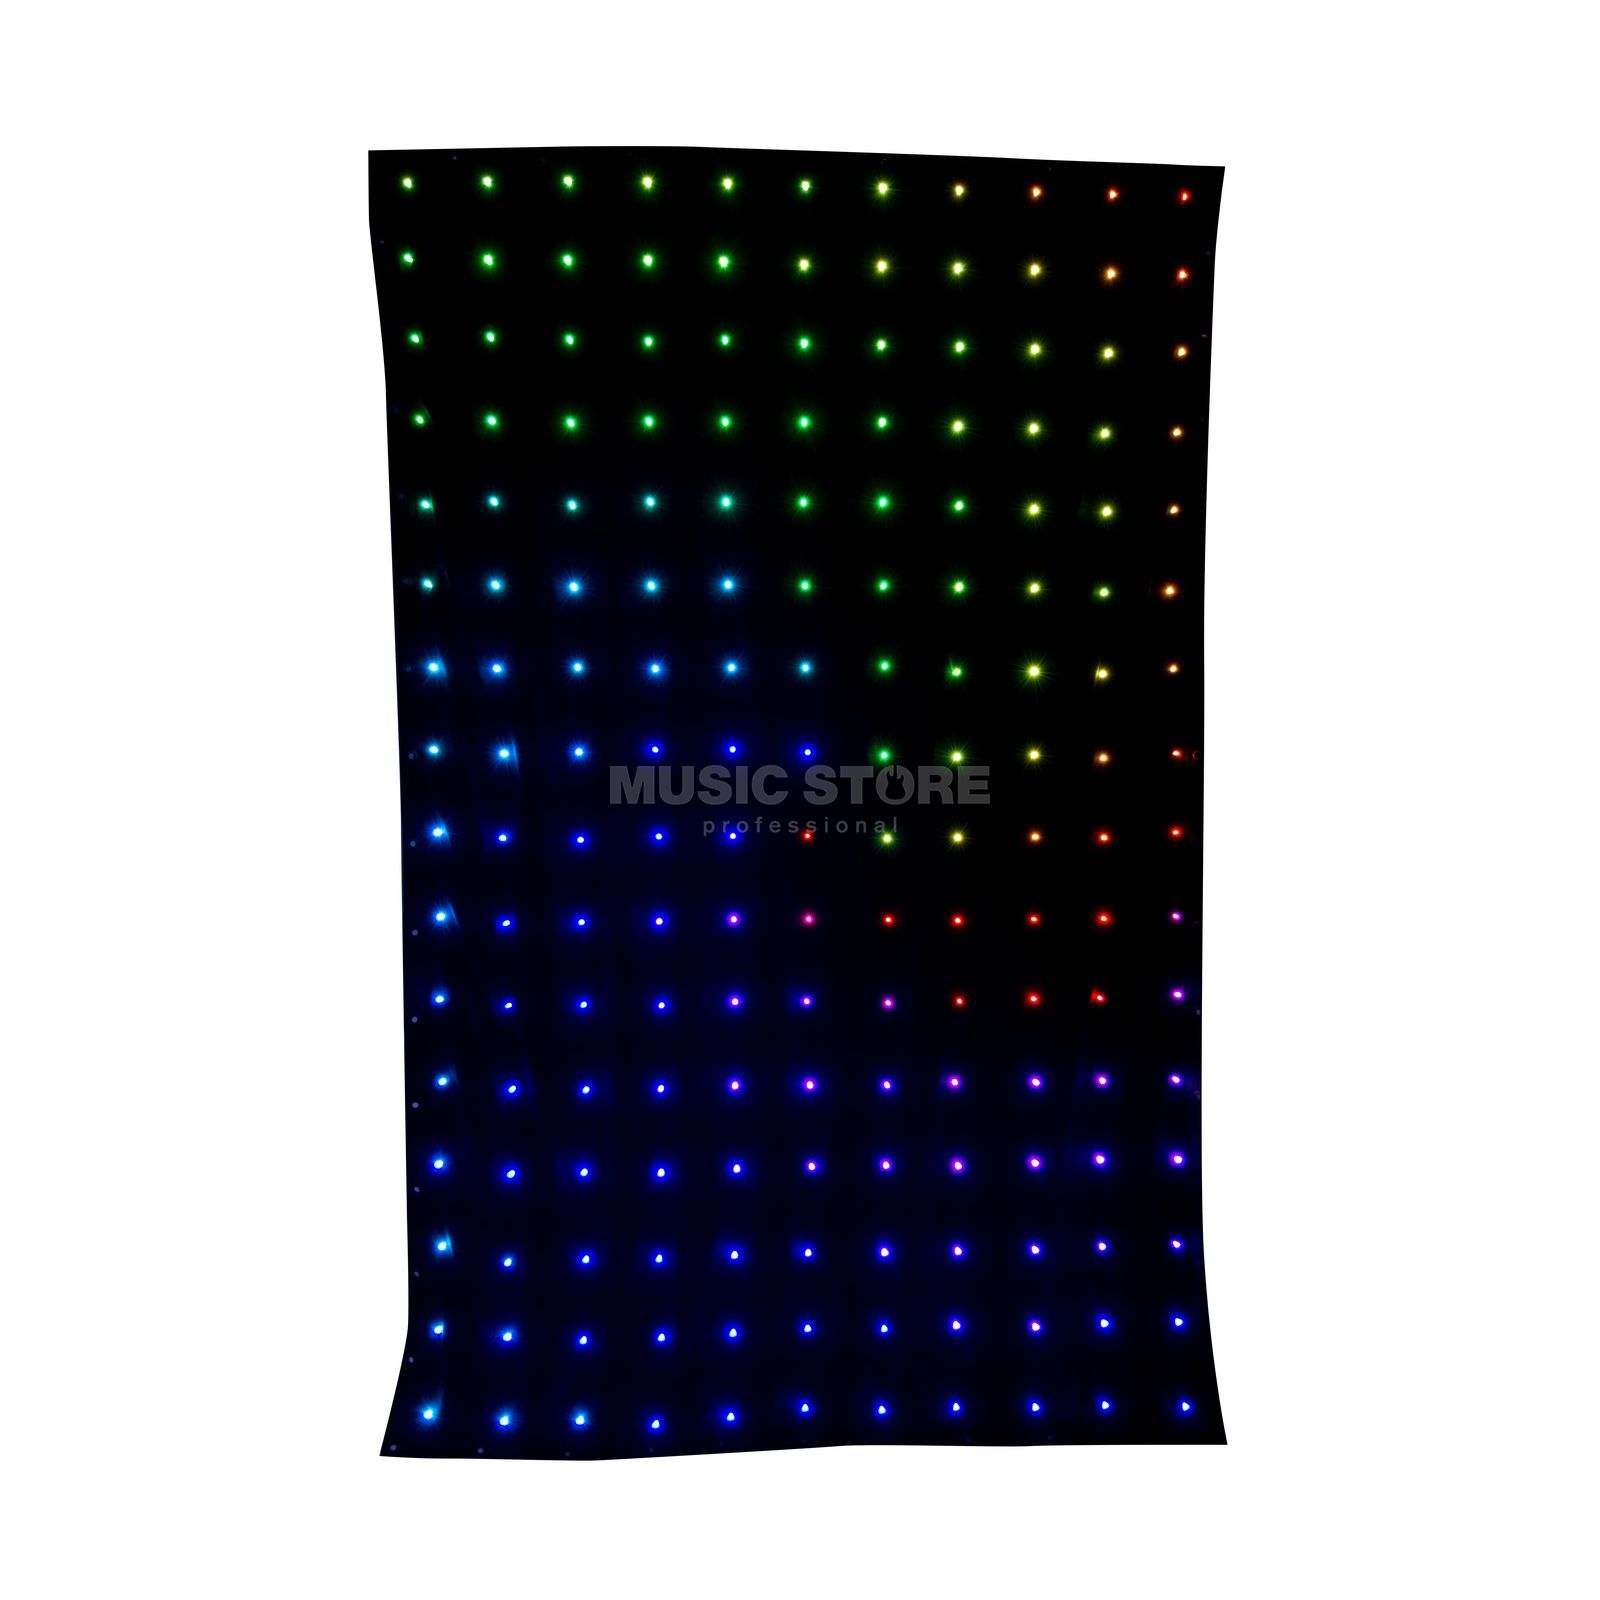 lightmaXX LED DROP I RGB Matrix 1x2m, incl. Controller & Bag Produktbillede